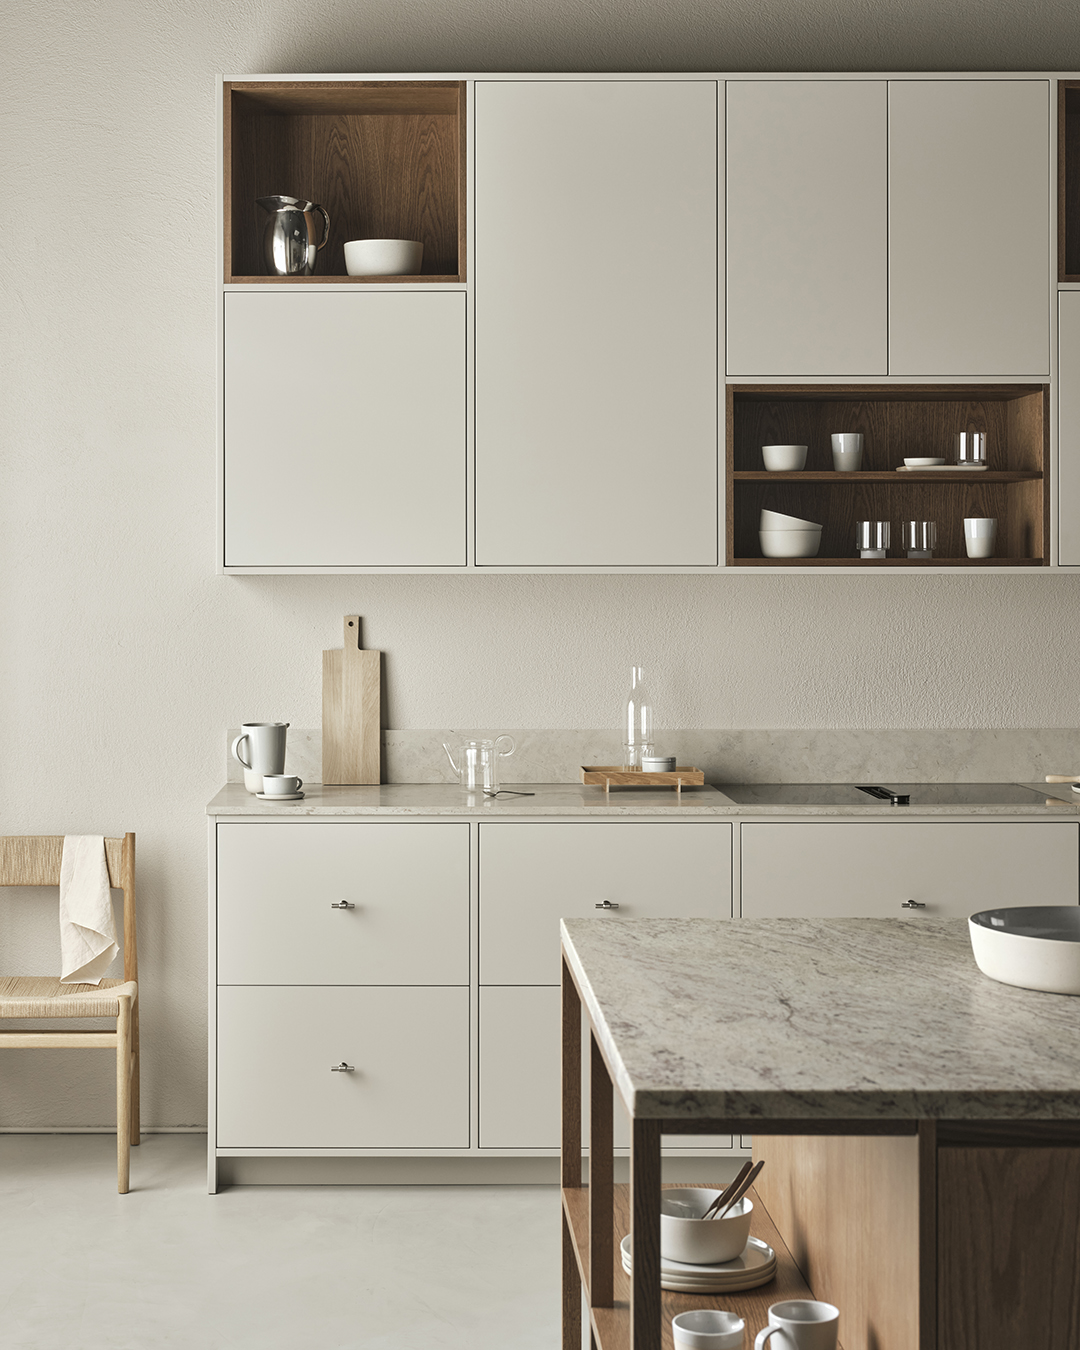 Minimalist grey kitchen with stone worktops, sections of open shelving, oak accents and beige walls | Eight inspiring kitchen ideas from Nordiska Kök's new showroom | These Four Walls blog